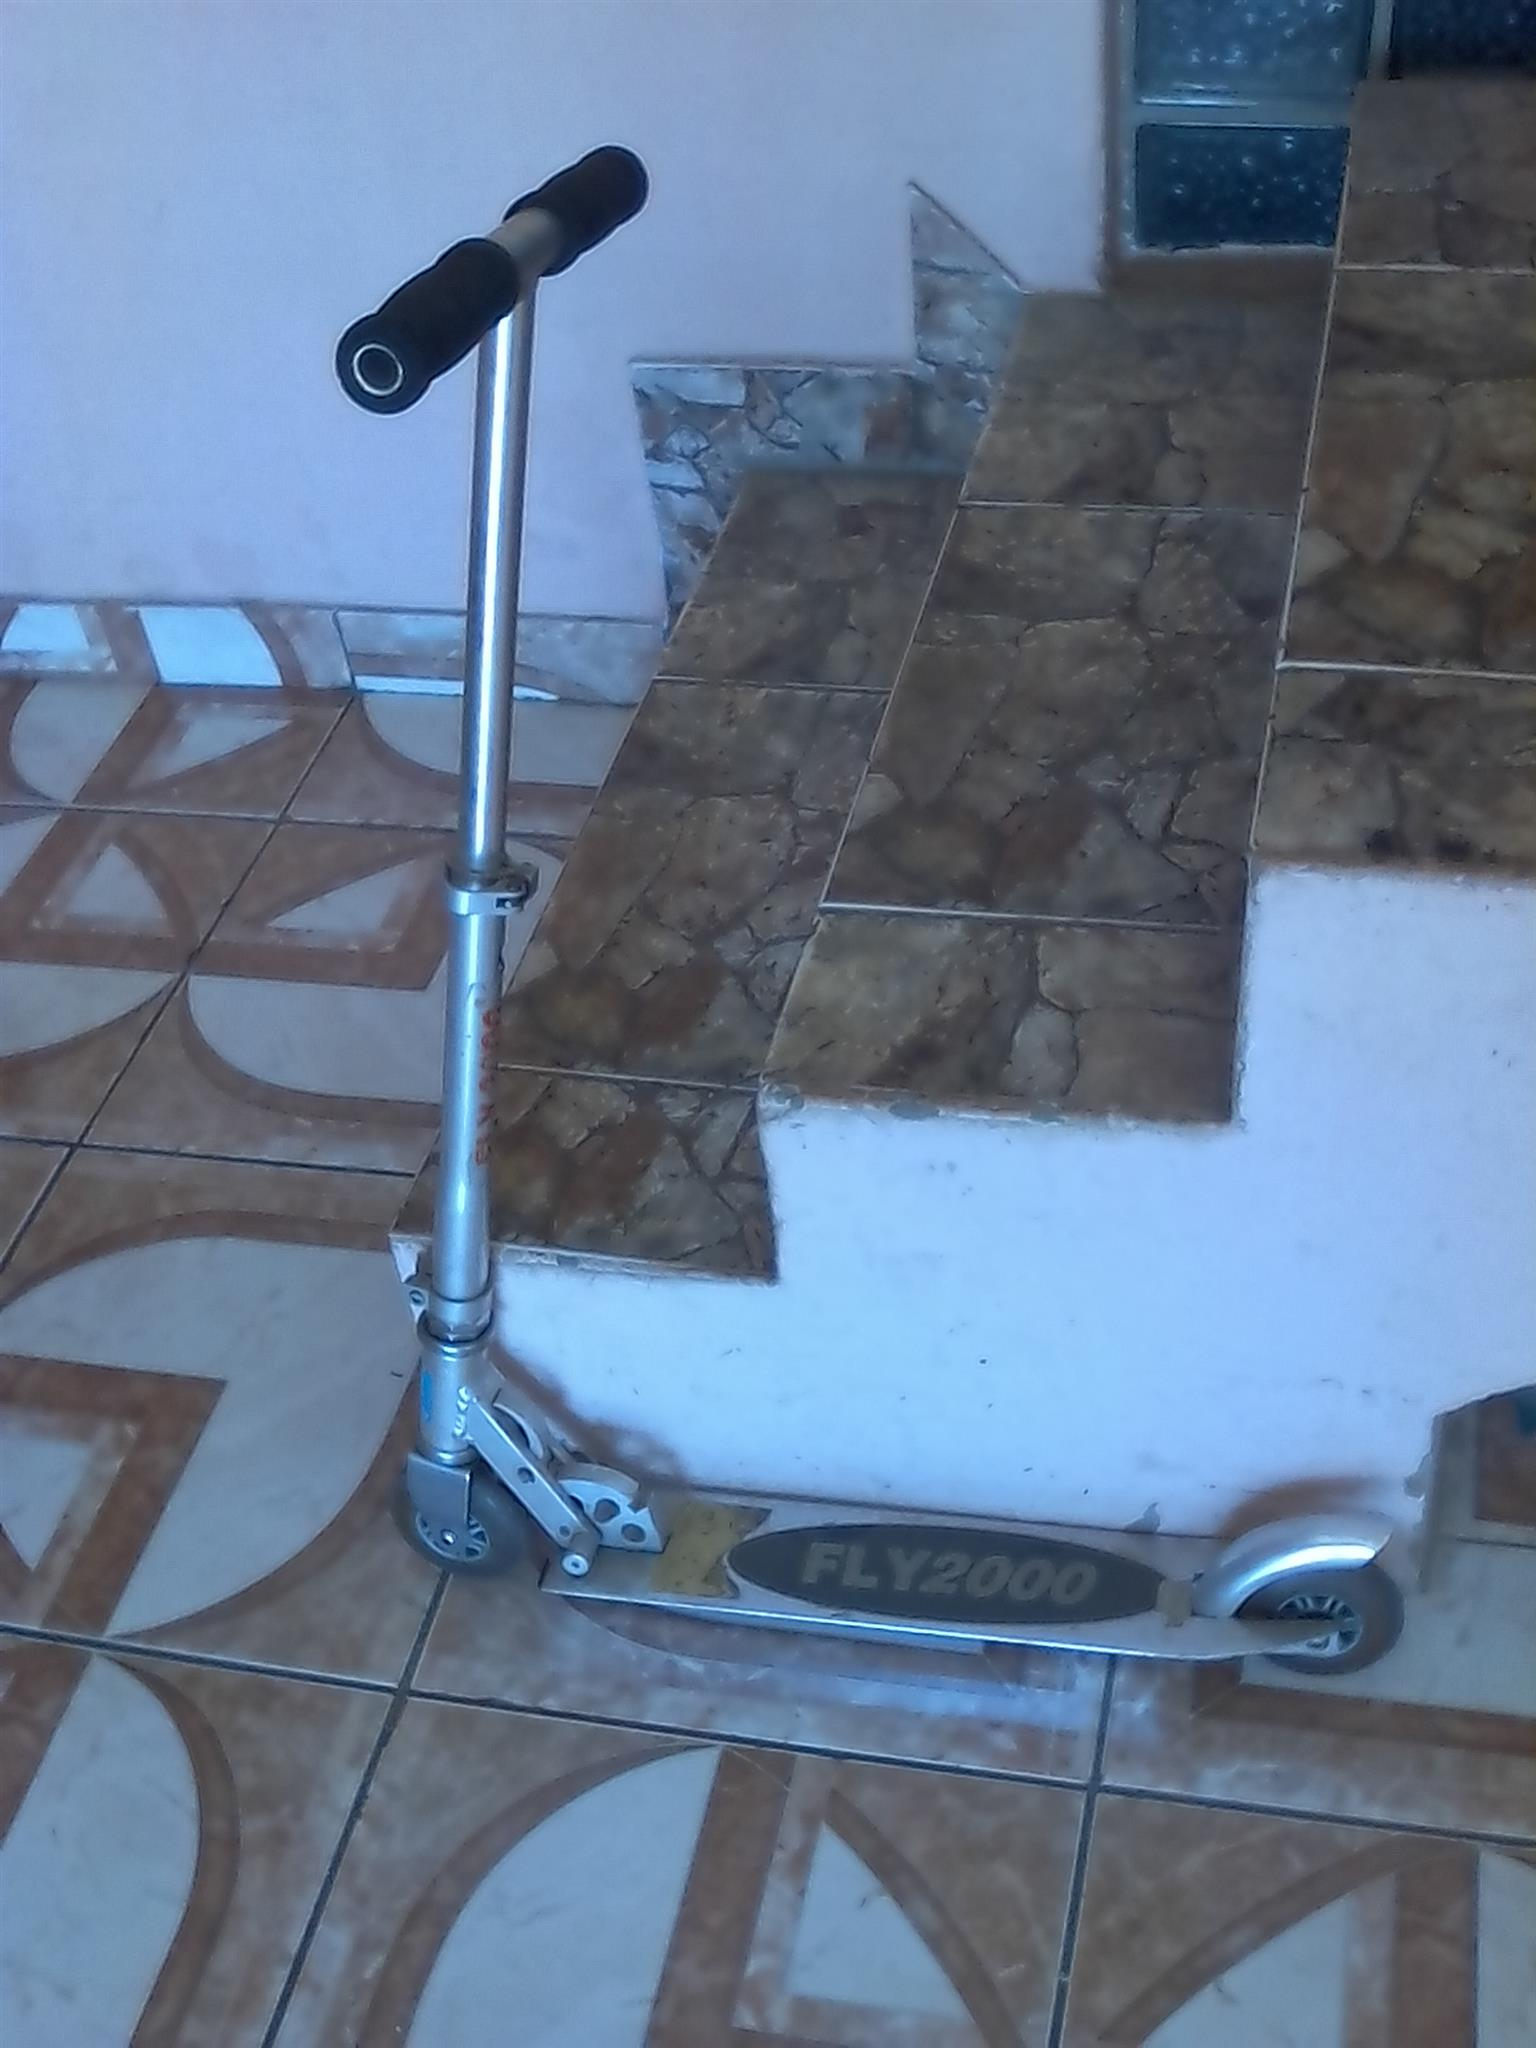 Scooter and skateboard excellent condition